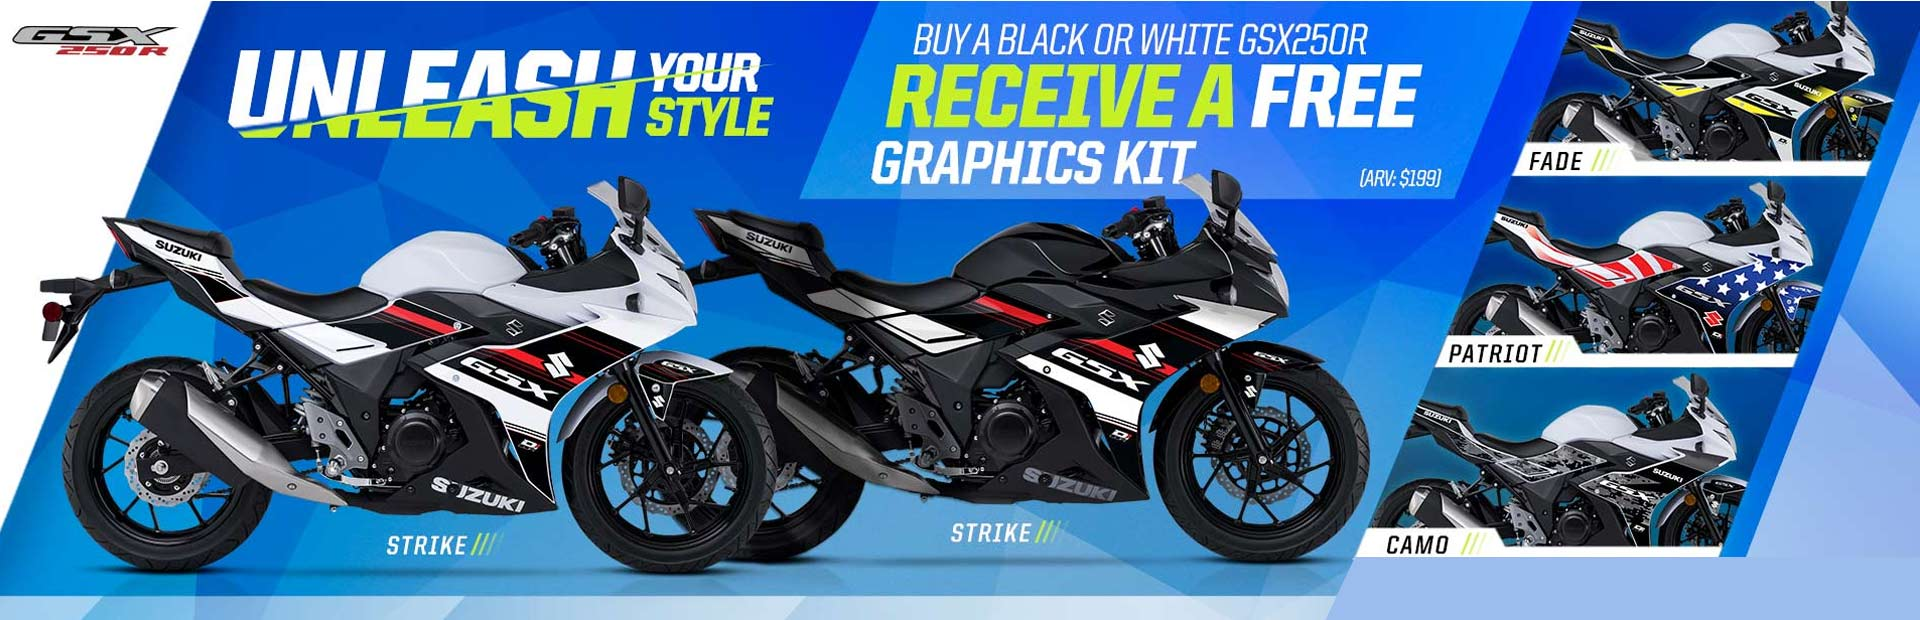 GSX250R Graphics Kit Promotion